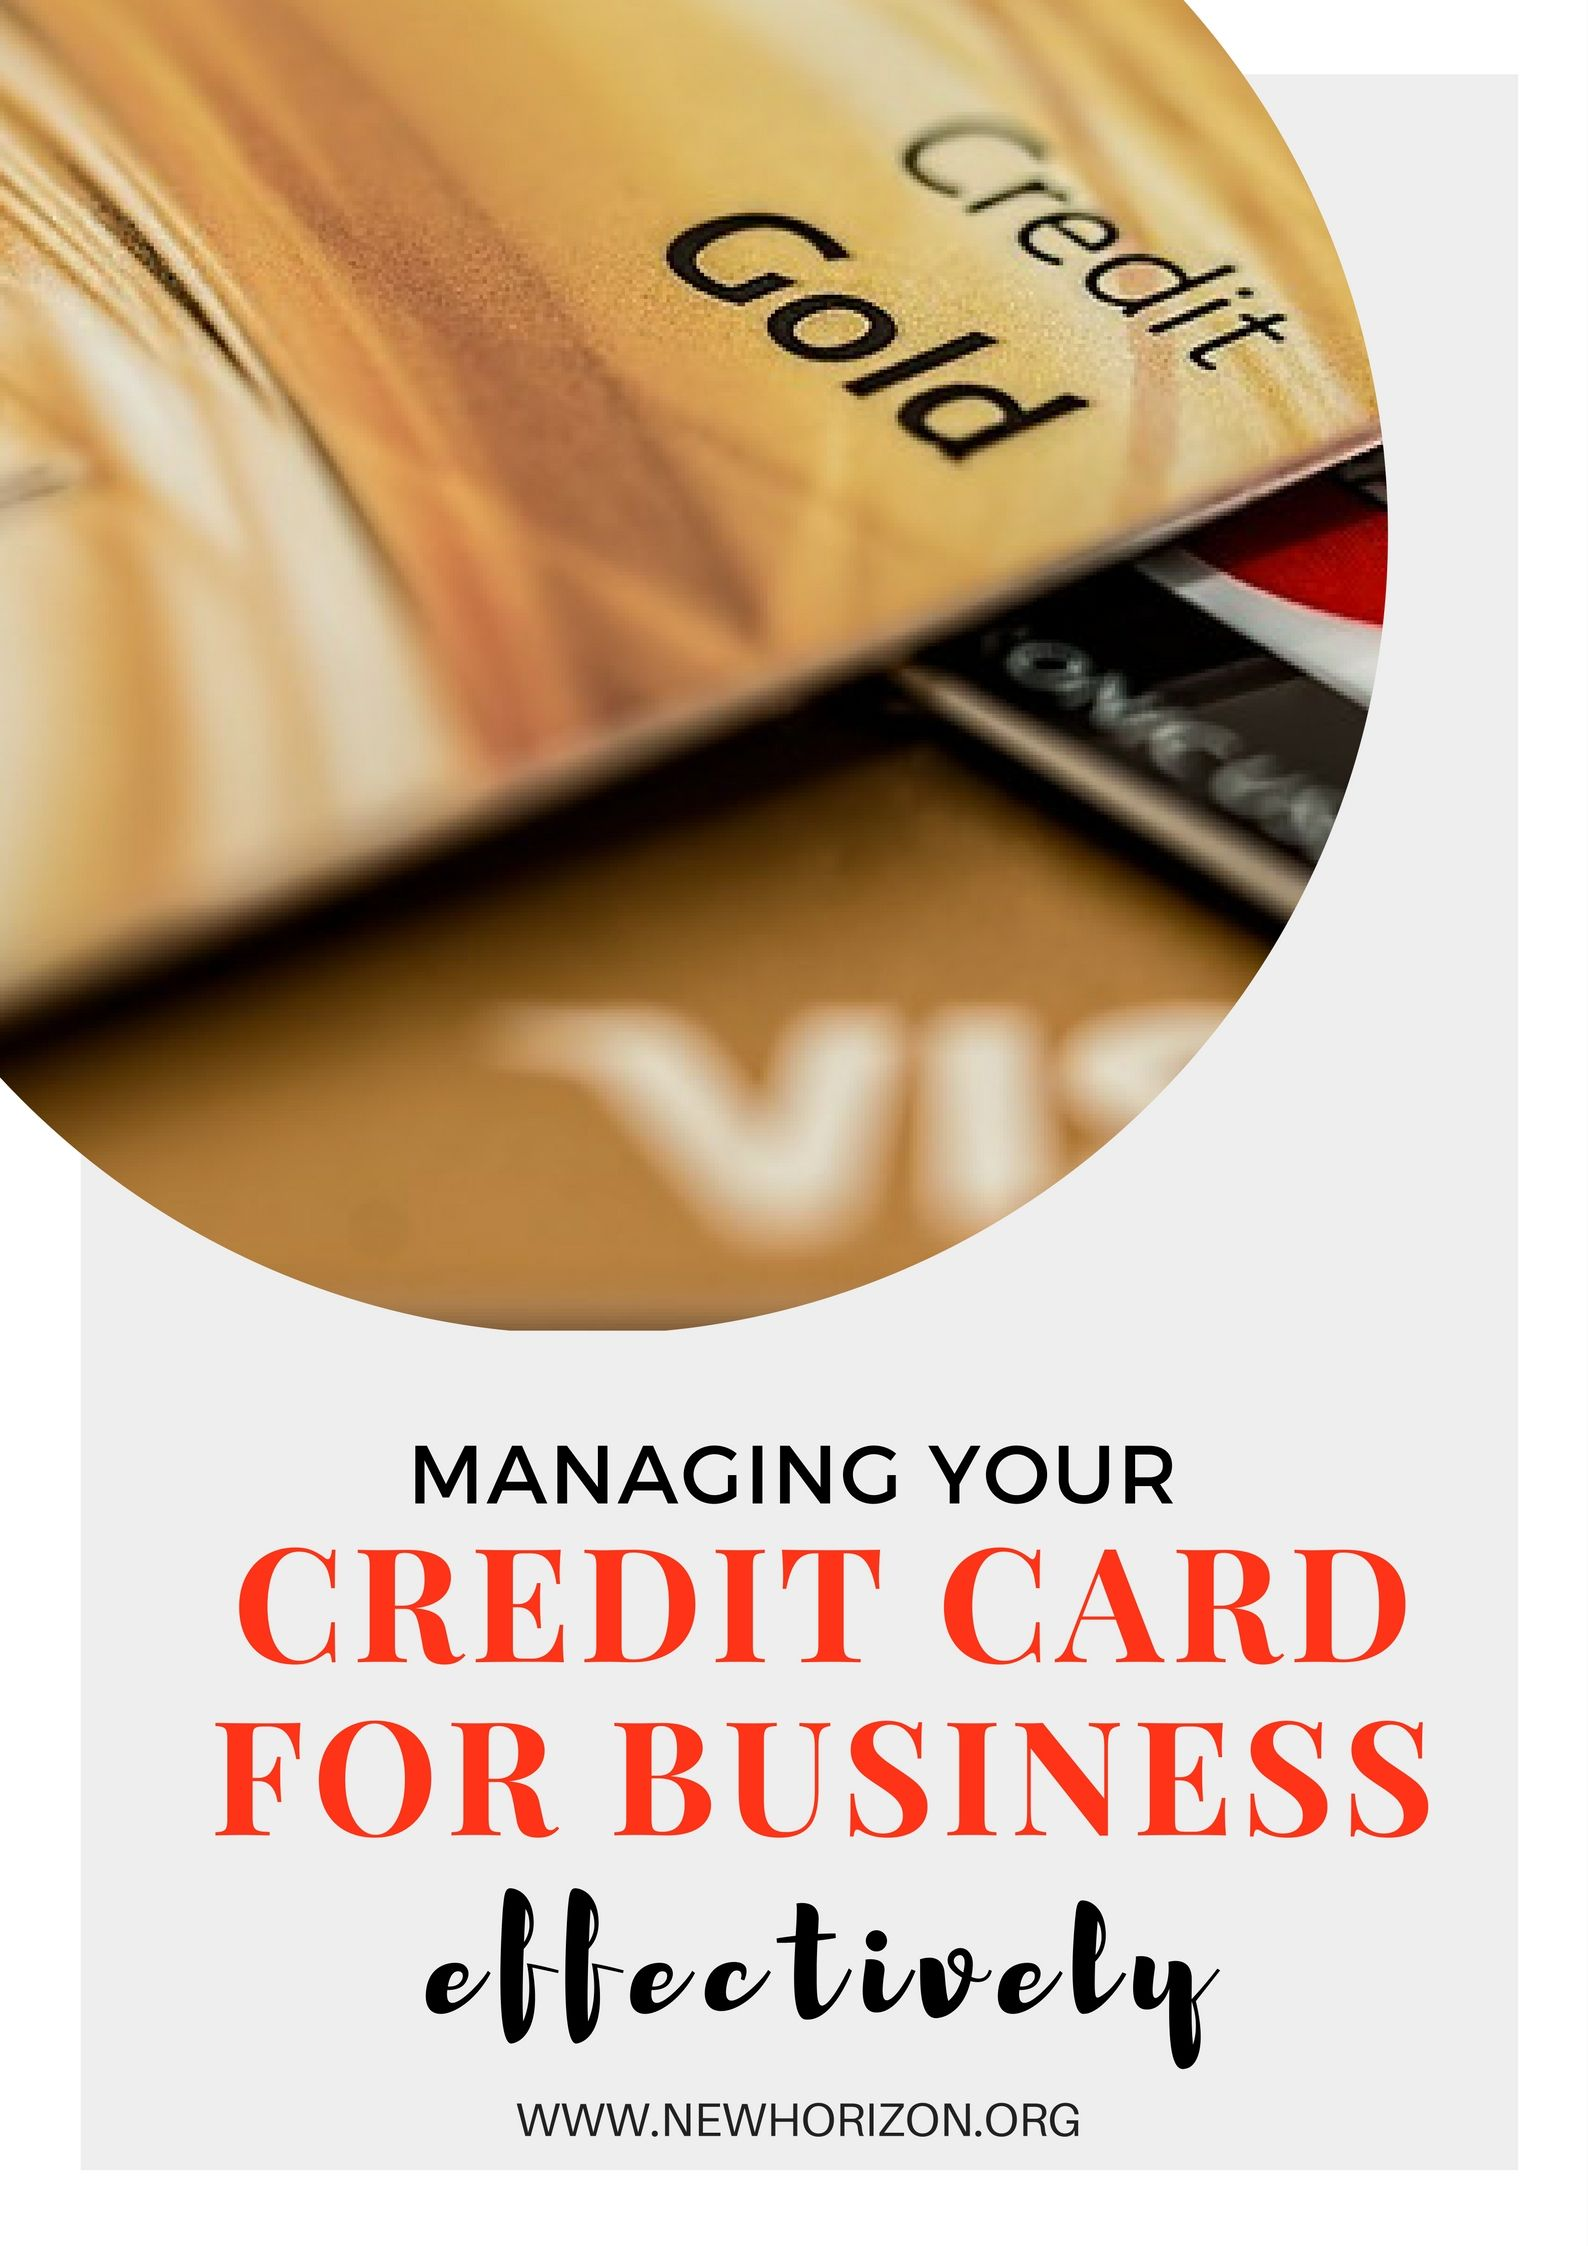 Managing your credit card for business effectively